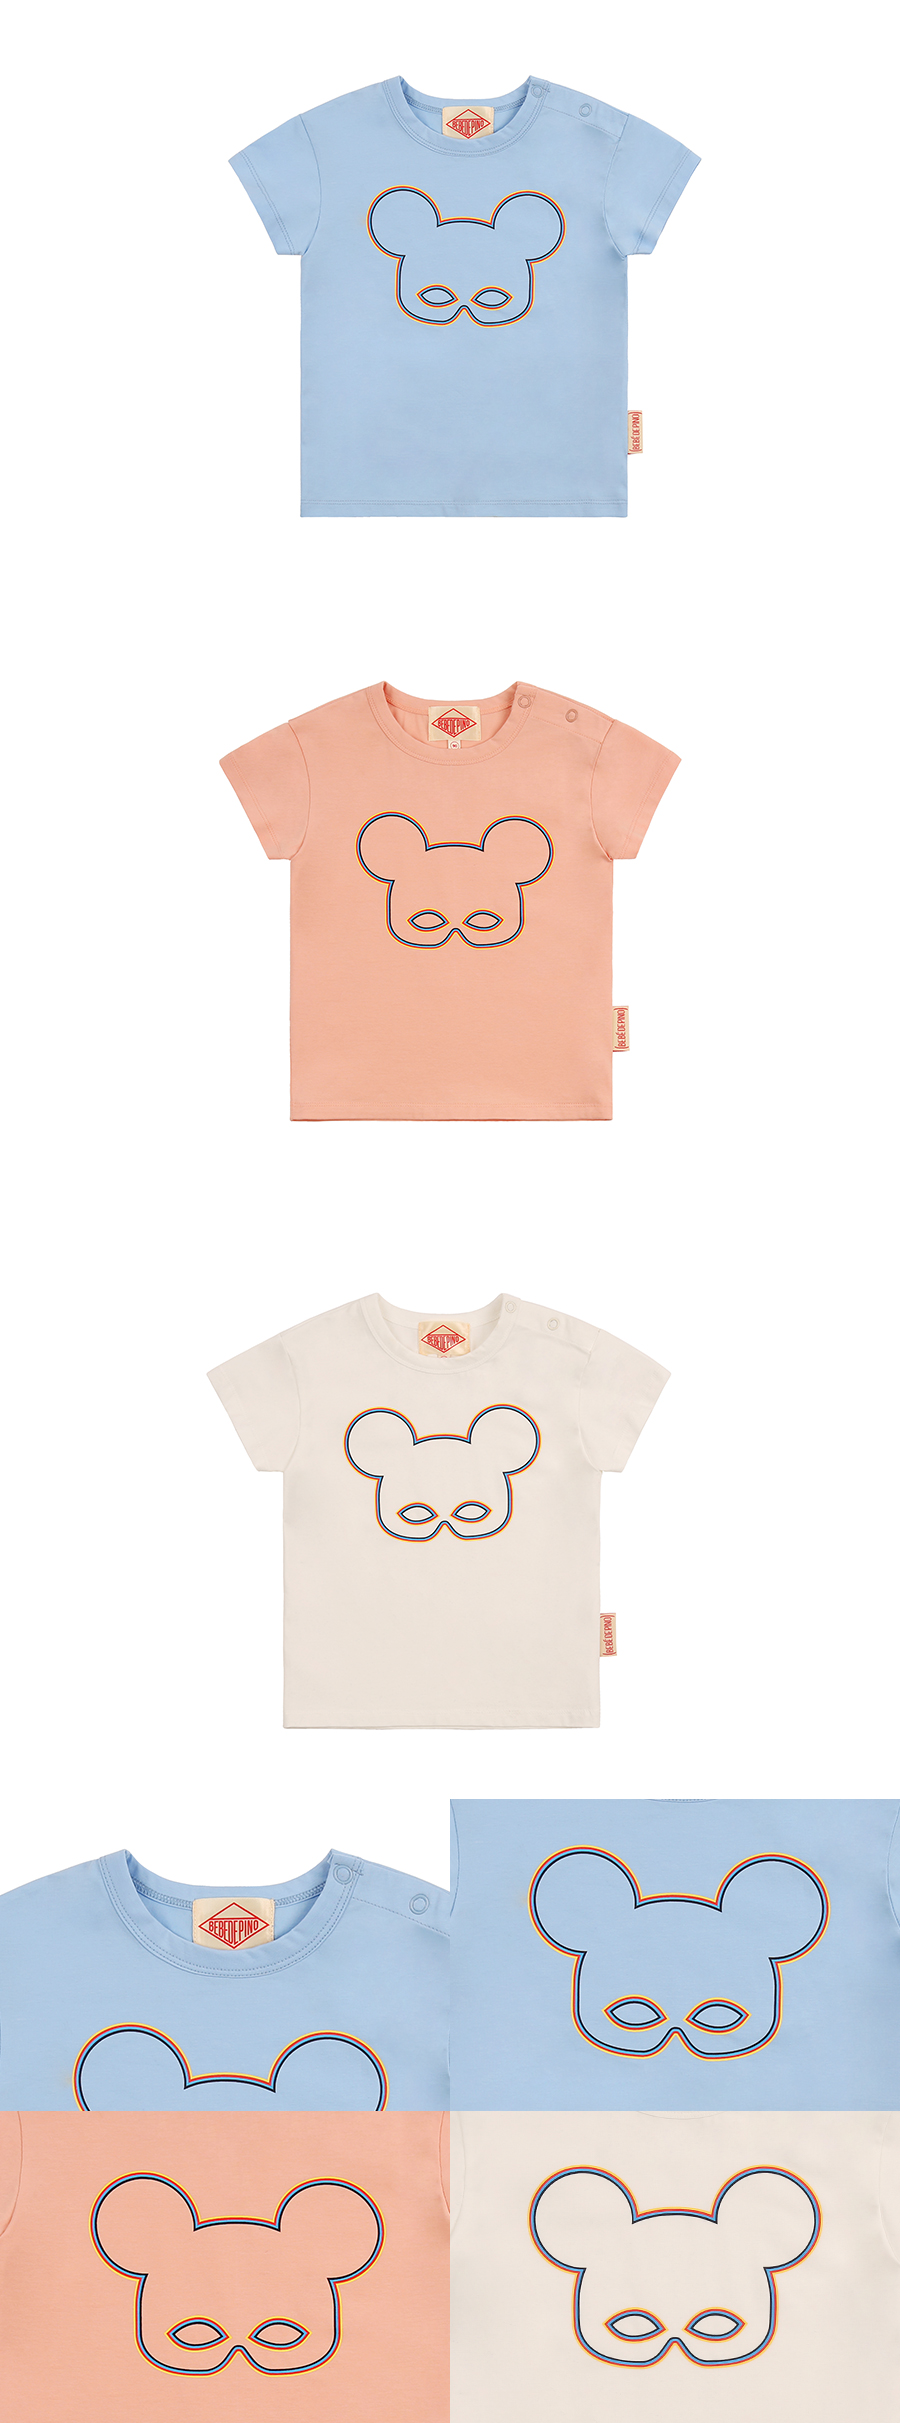 Basic baby edge rainbowpino tee 상세 이미지